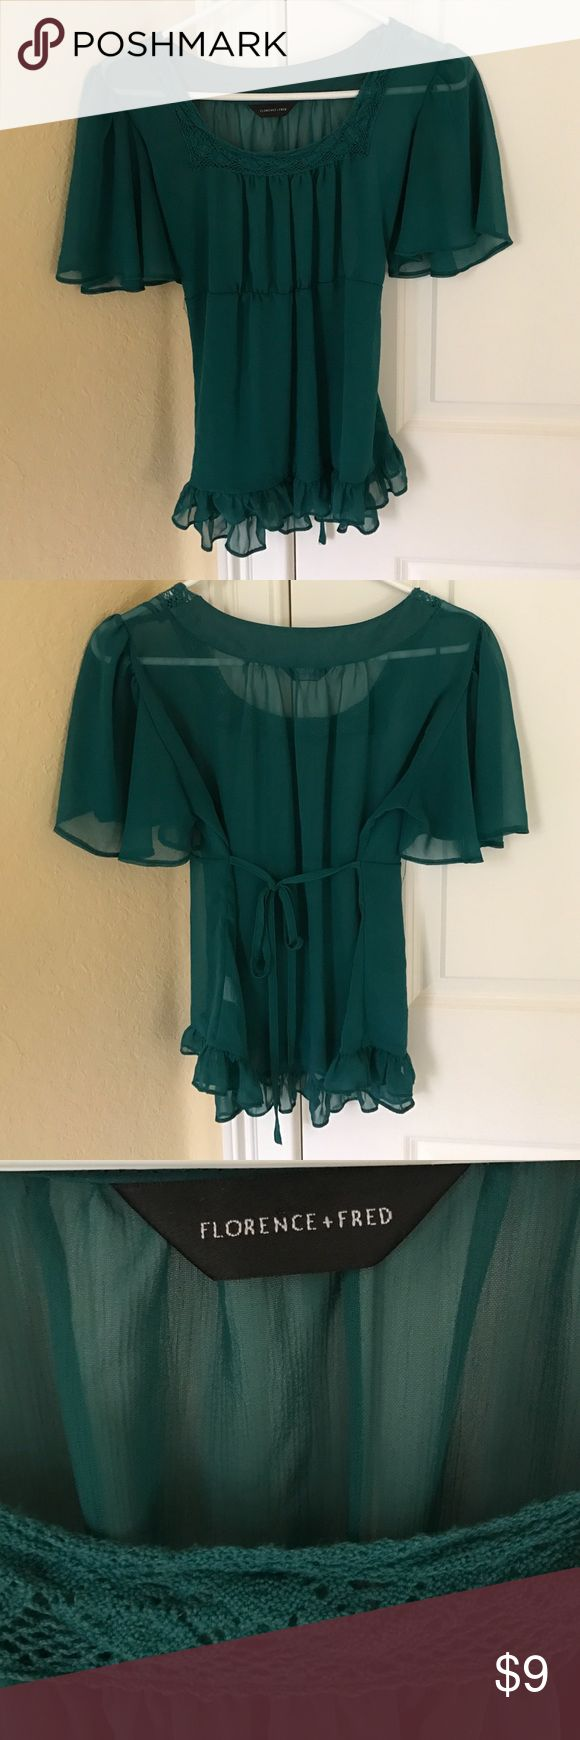 Florence and Fred sheer green blouse top 10(UK)6US Florence and Fred sheer green blouse top 10(UK)6US some visible signs of wear sold as is florence and fred Tops Blouses